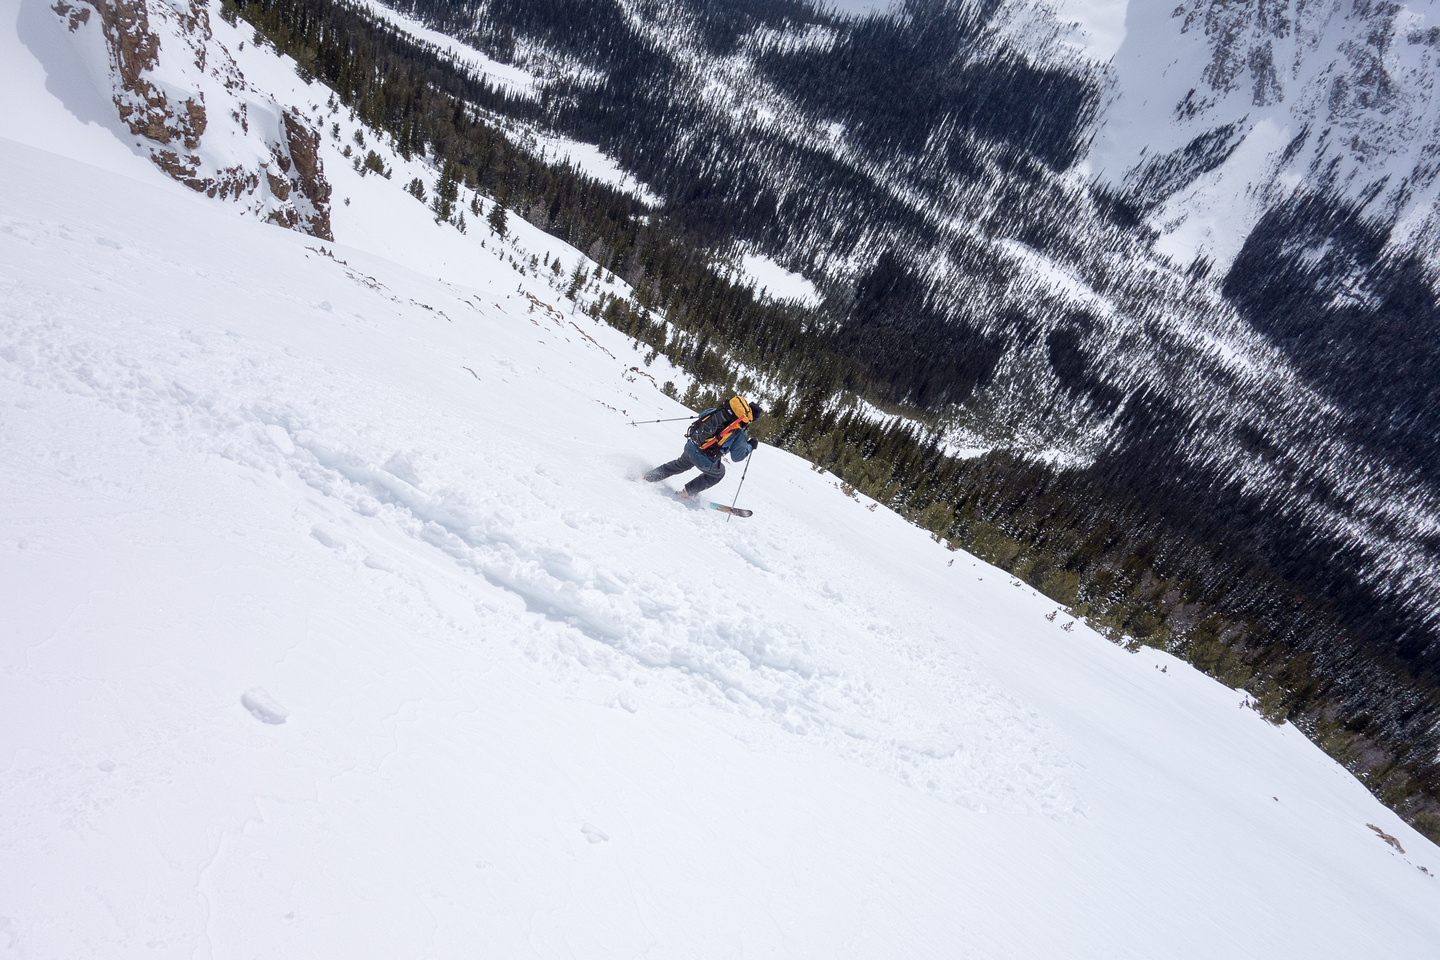 Skiing the lower avy slope.